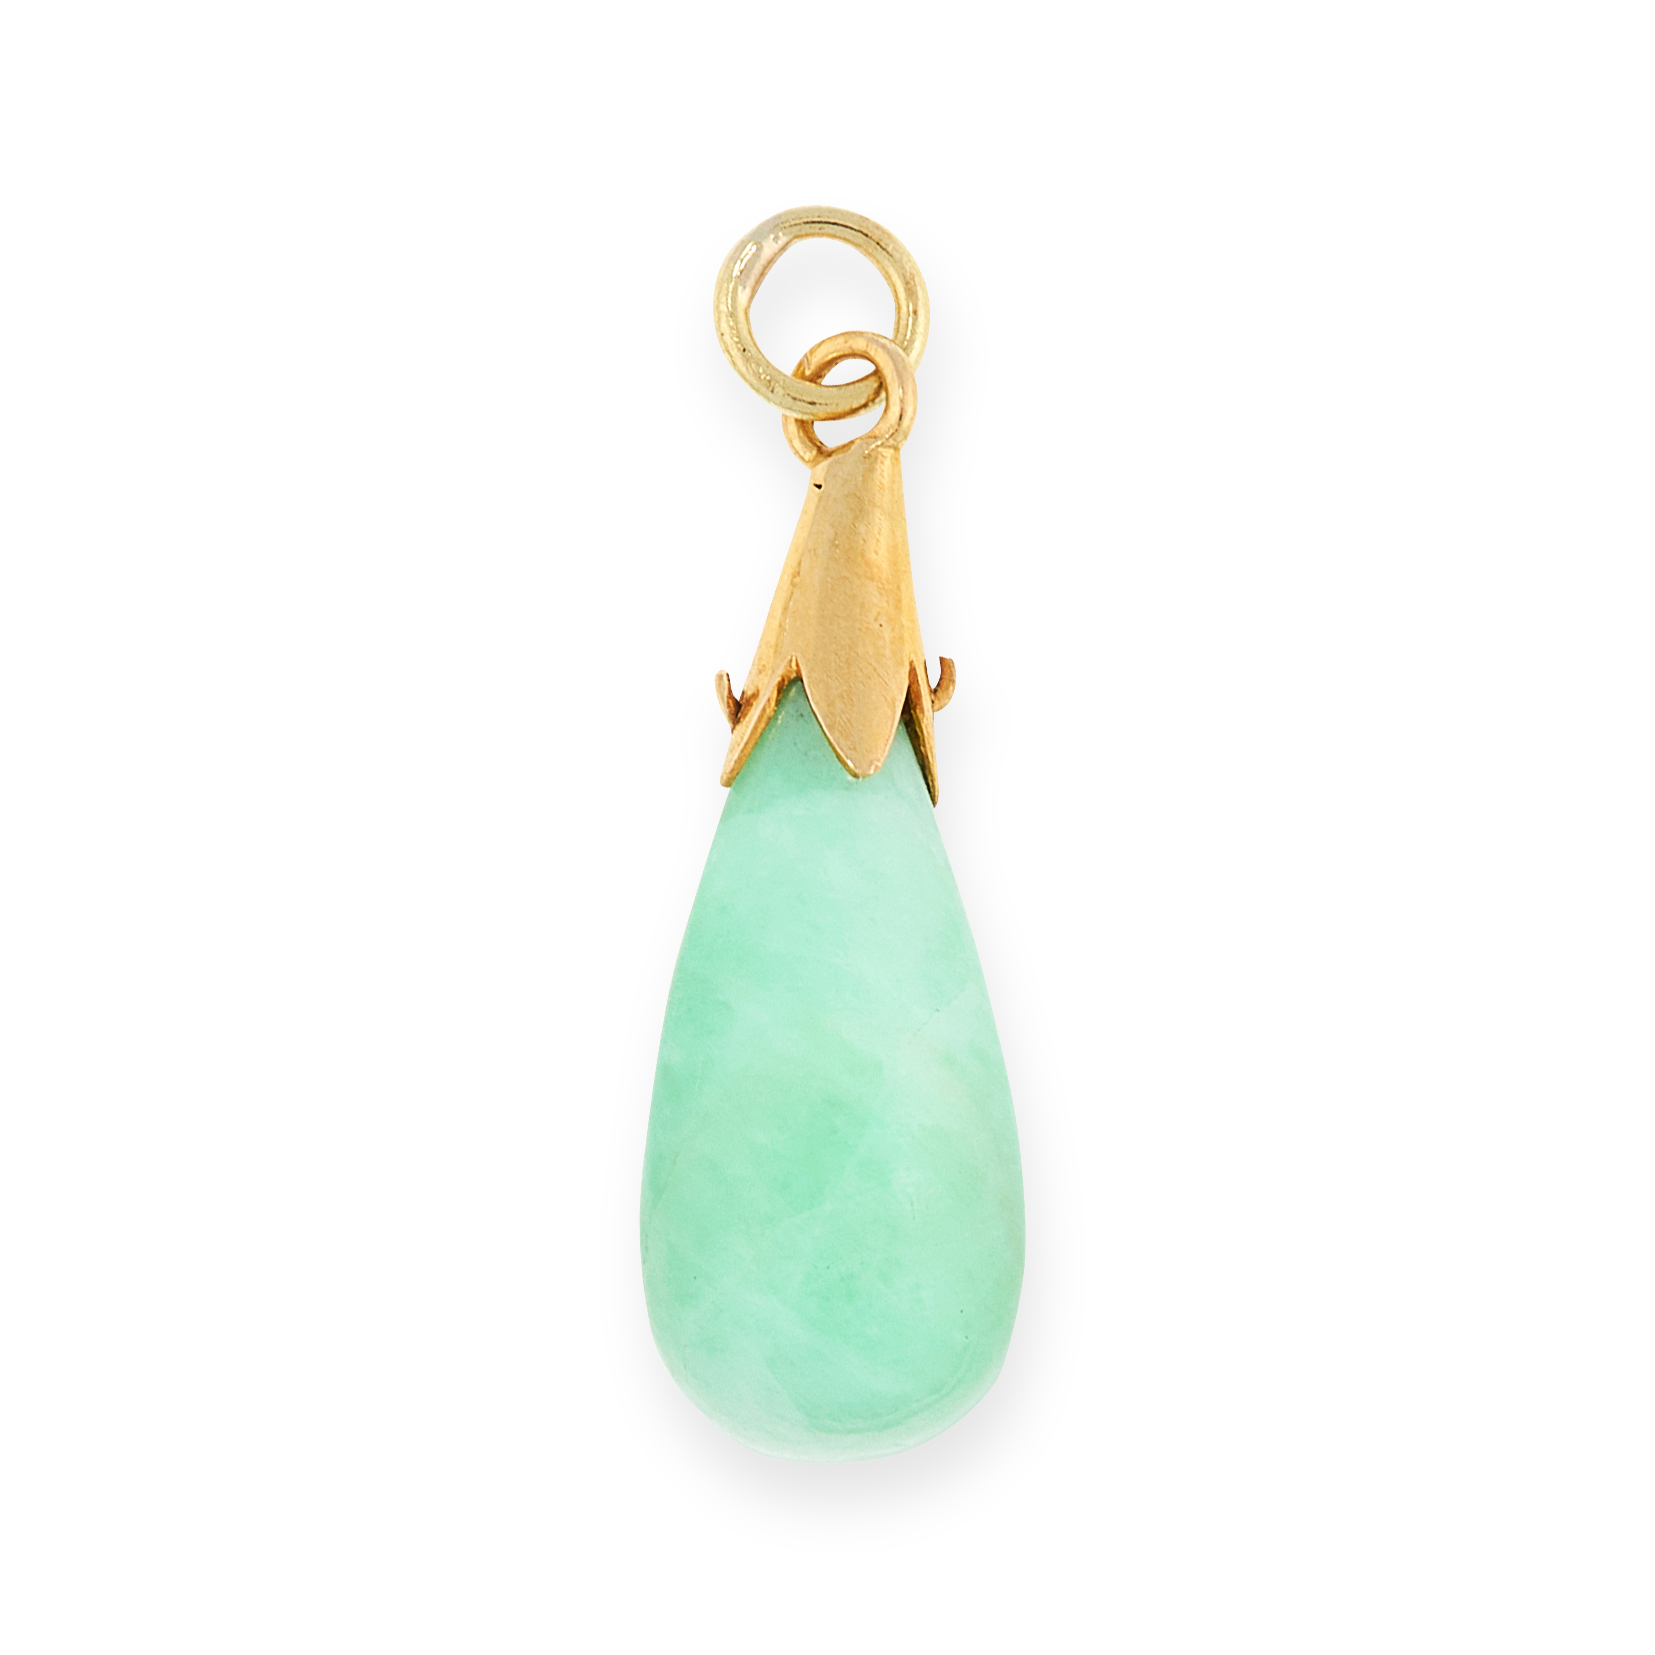 A JADEITE JADE PENDANT in yellow gold, comprising of a single piece of polished jadeite jade in